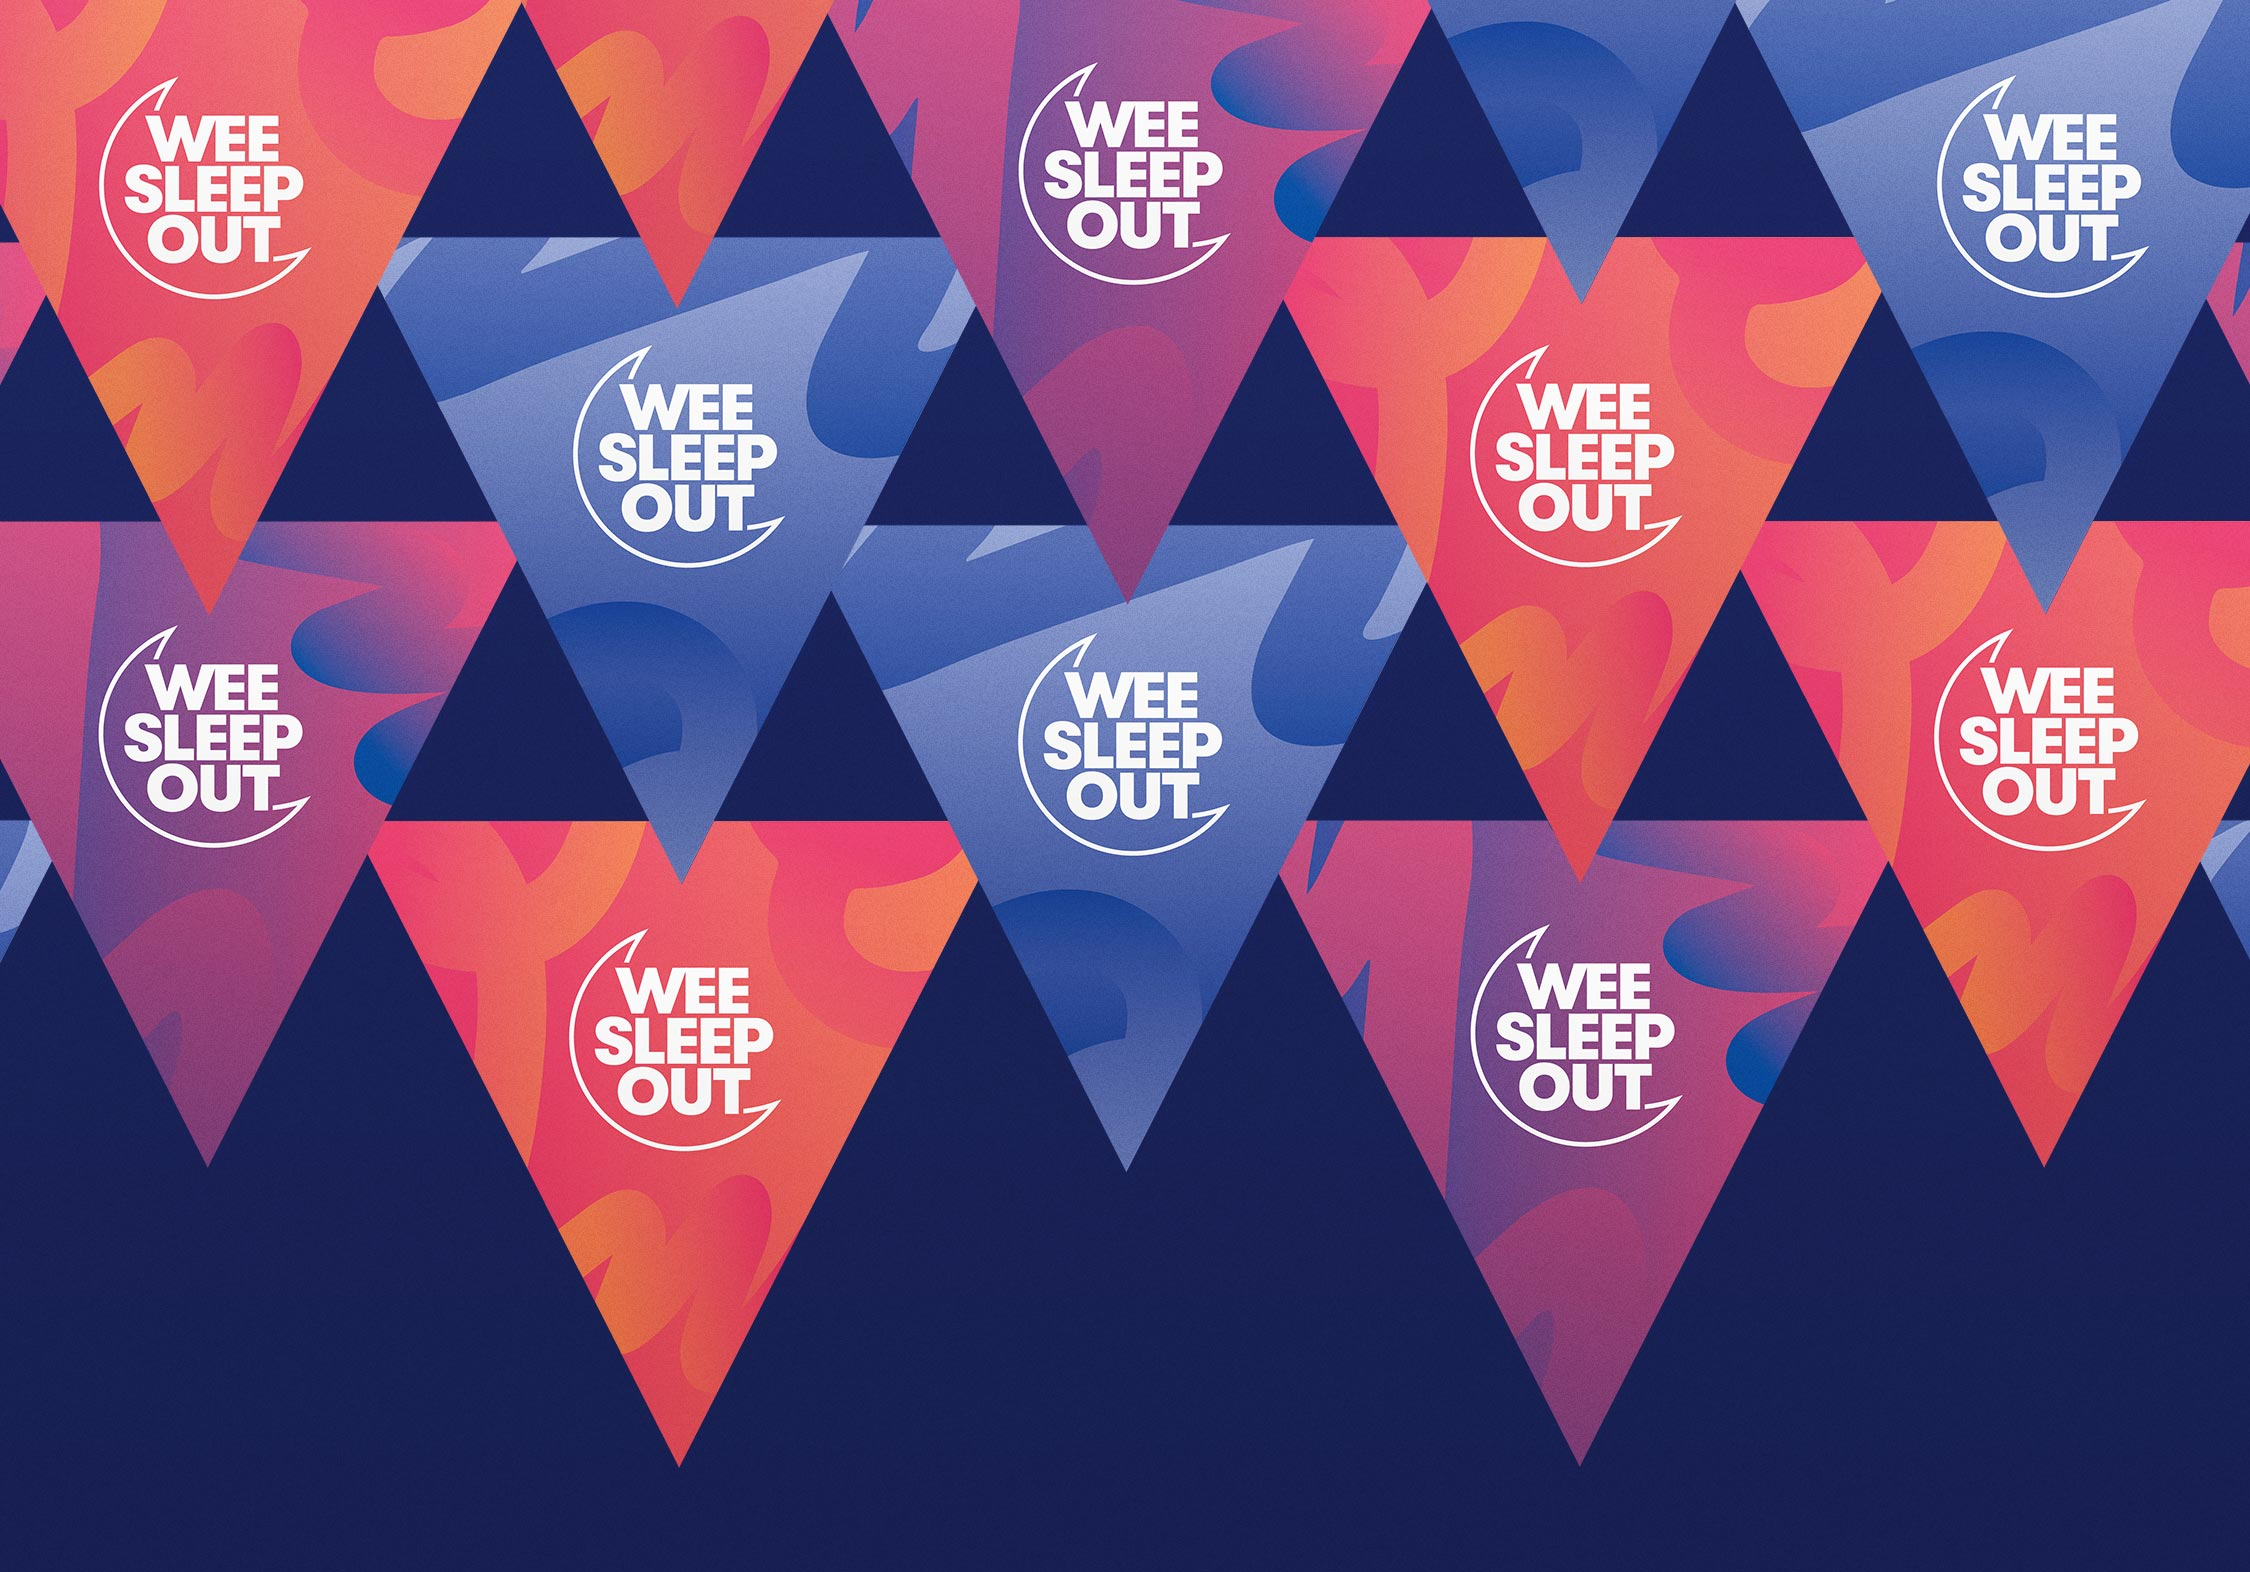 Wee_Sleep_Out_Bunting_02